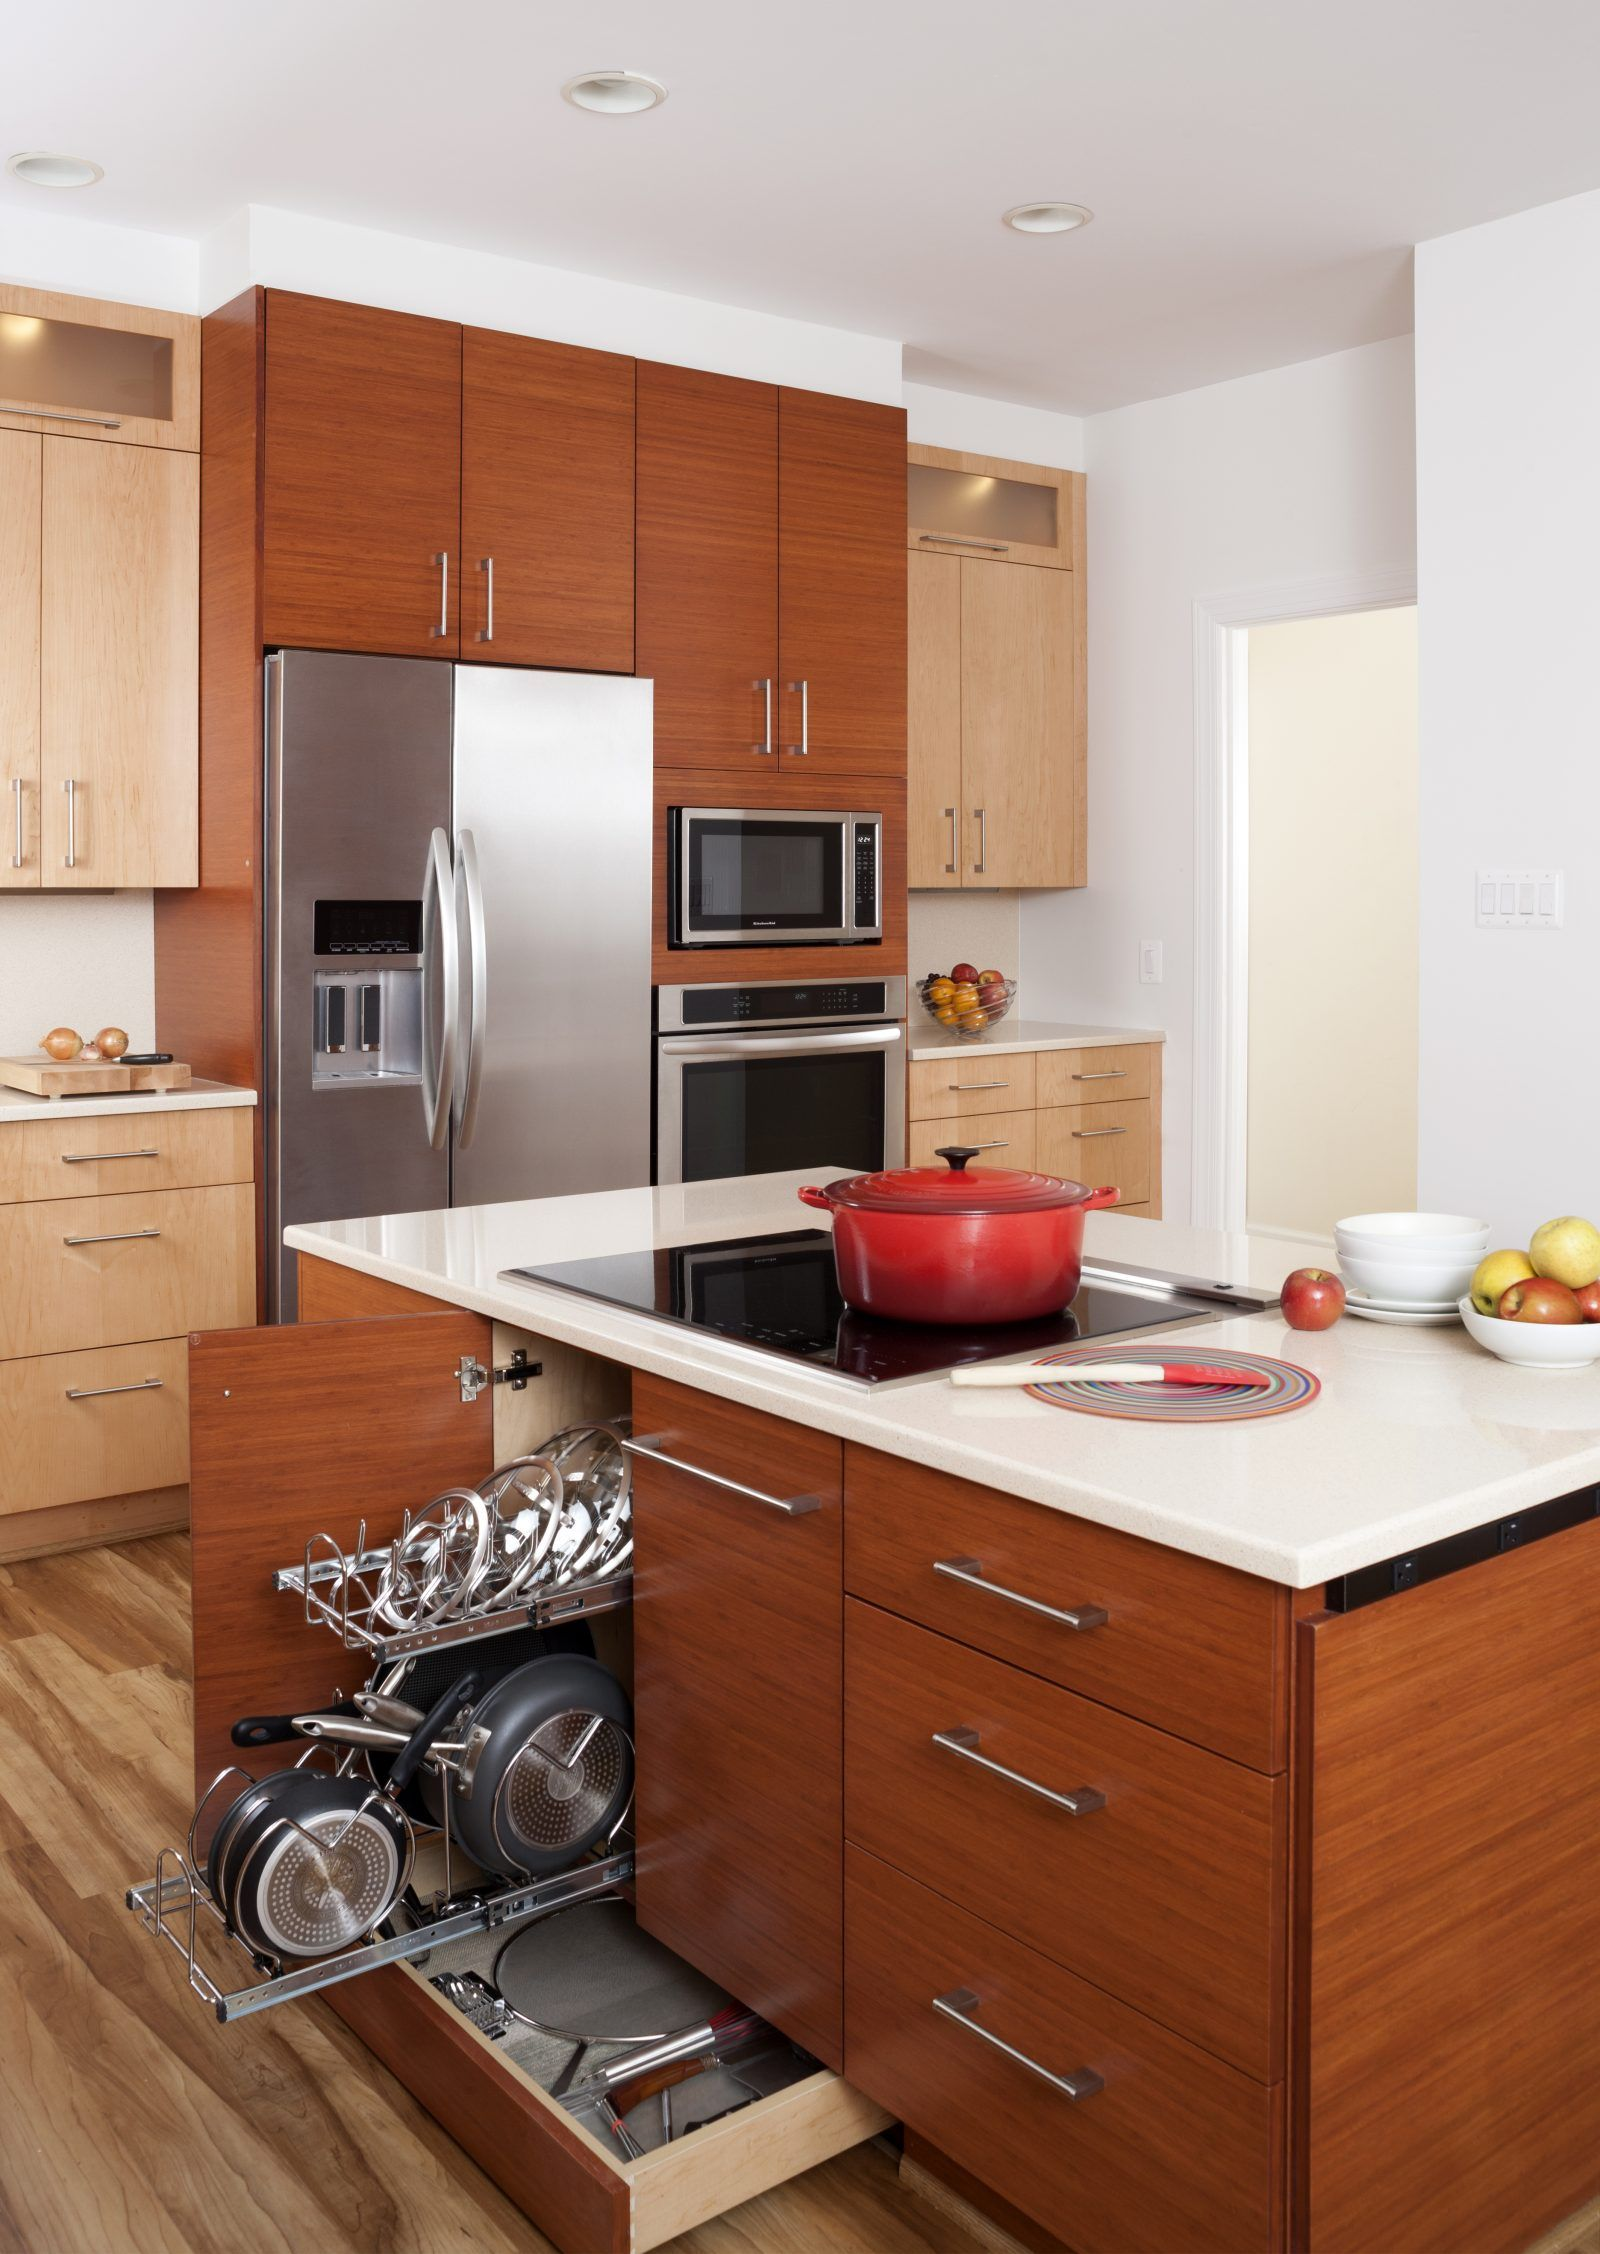 What Is A Gourmet Kitchen Case Design Remodeling Md Dc Nova Home Remodeling Contractors Home Remodeling Kitchen Remodel